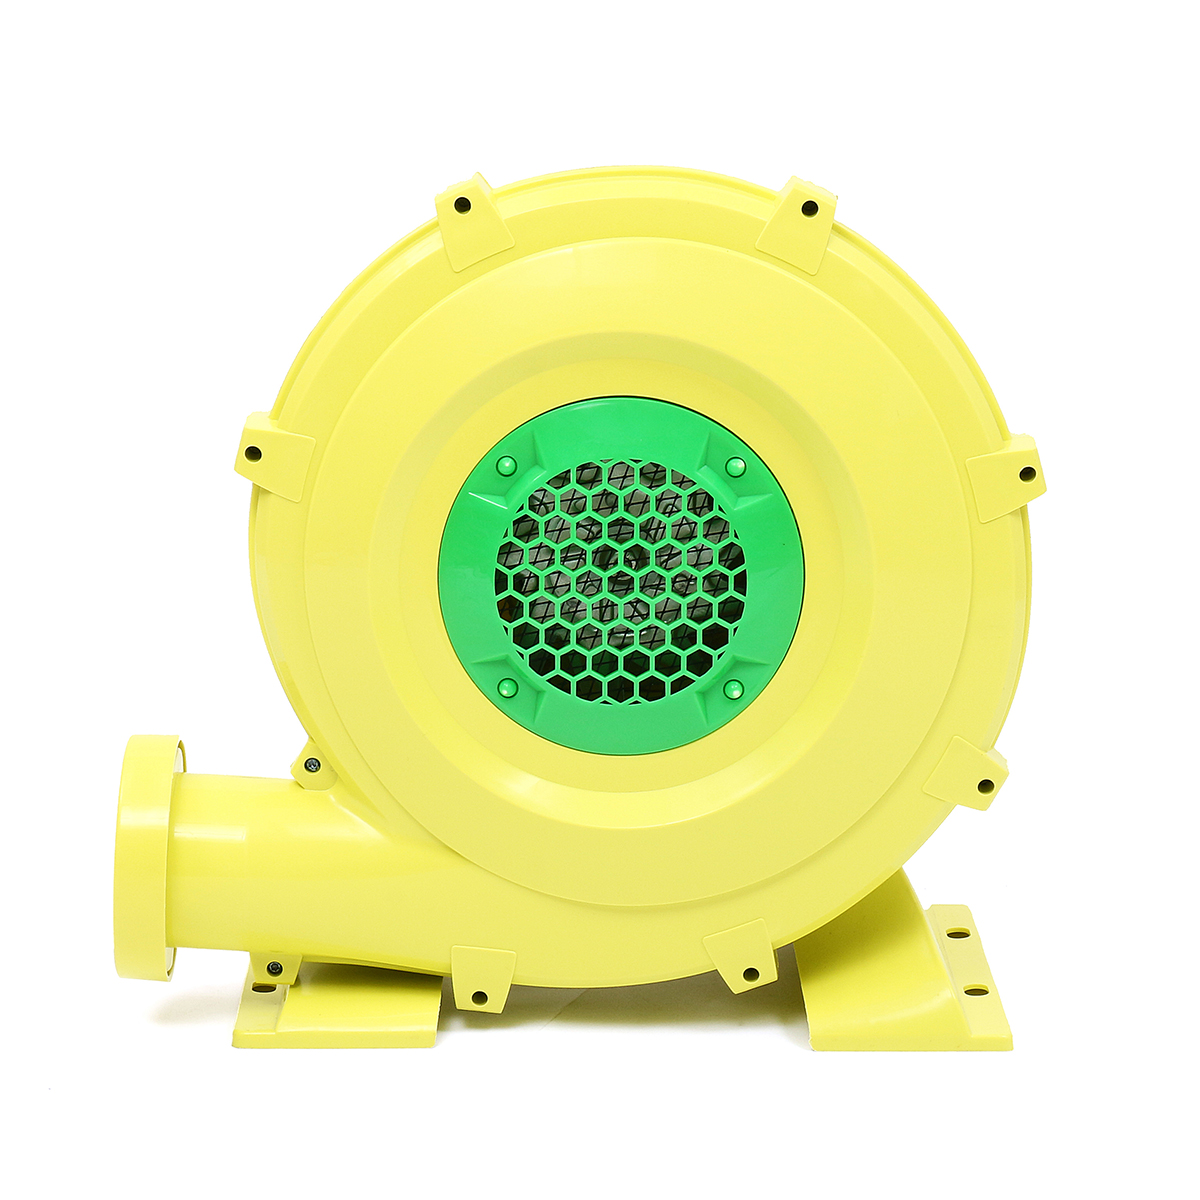 110V/220V Air For Blower For Air Bubble Tent Inflatable Outdoors Stargazing Camping 0639af